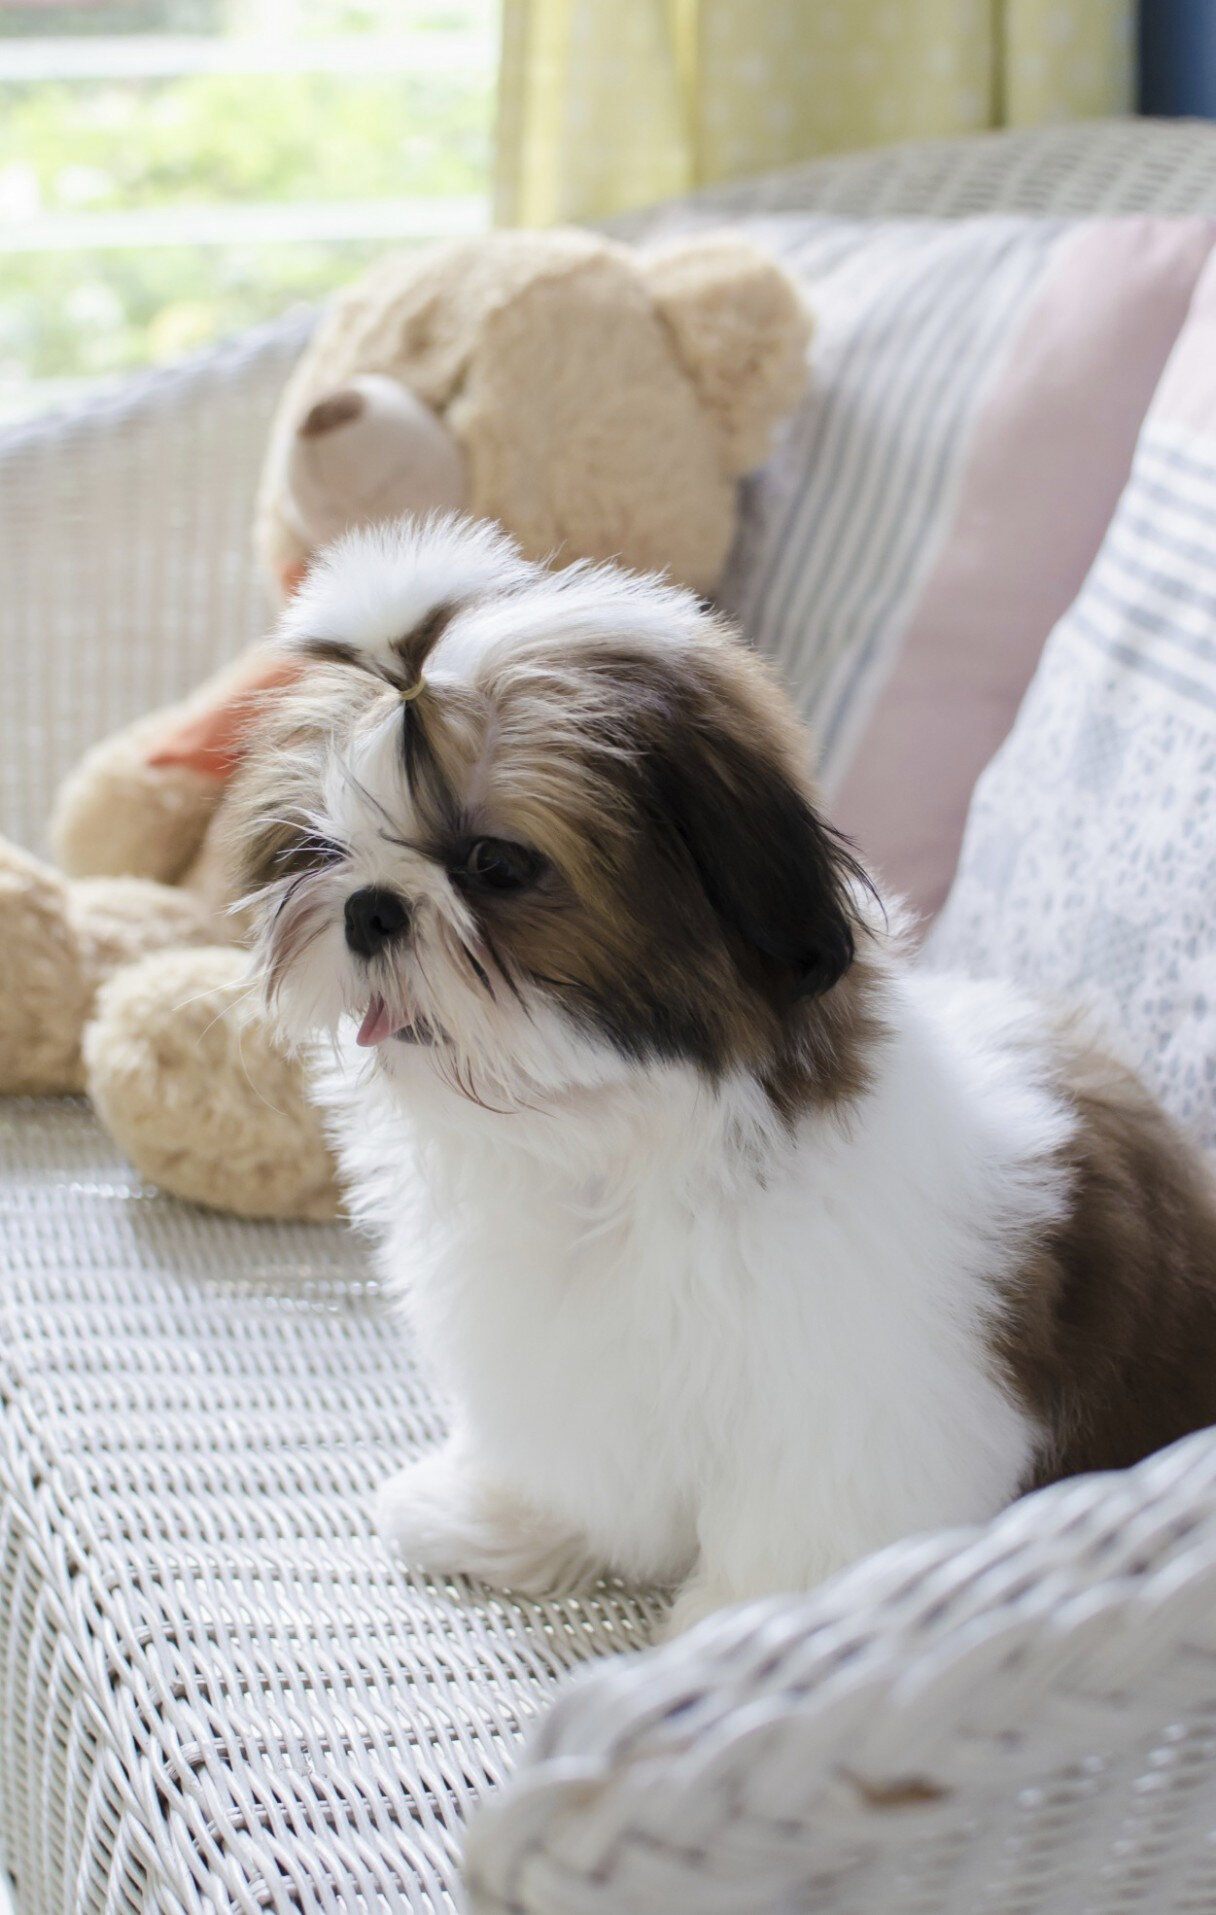 CHIEN_CHIOT_ SHIH TZU_A_VENDRE_A_ADOPTER_PARTICULIER__ELEVAGE_ELEVEUR_11_34_30_aude_narbonne_ HERAULT_GARD_MONTPELLIER_ NIMES_LUNEL_NEWS_PRESS_CARD_2019_11 (2)